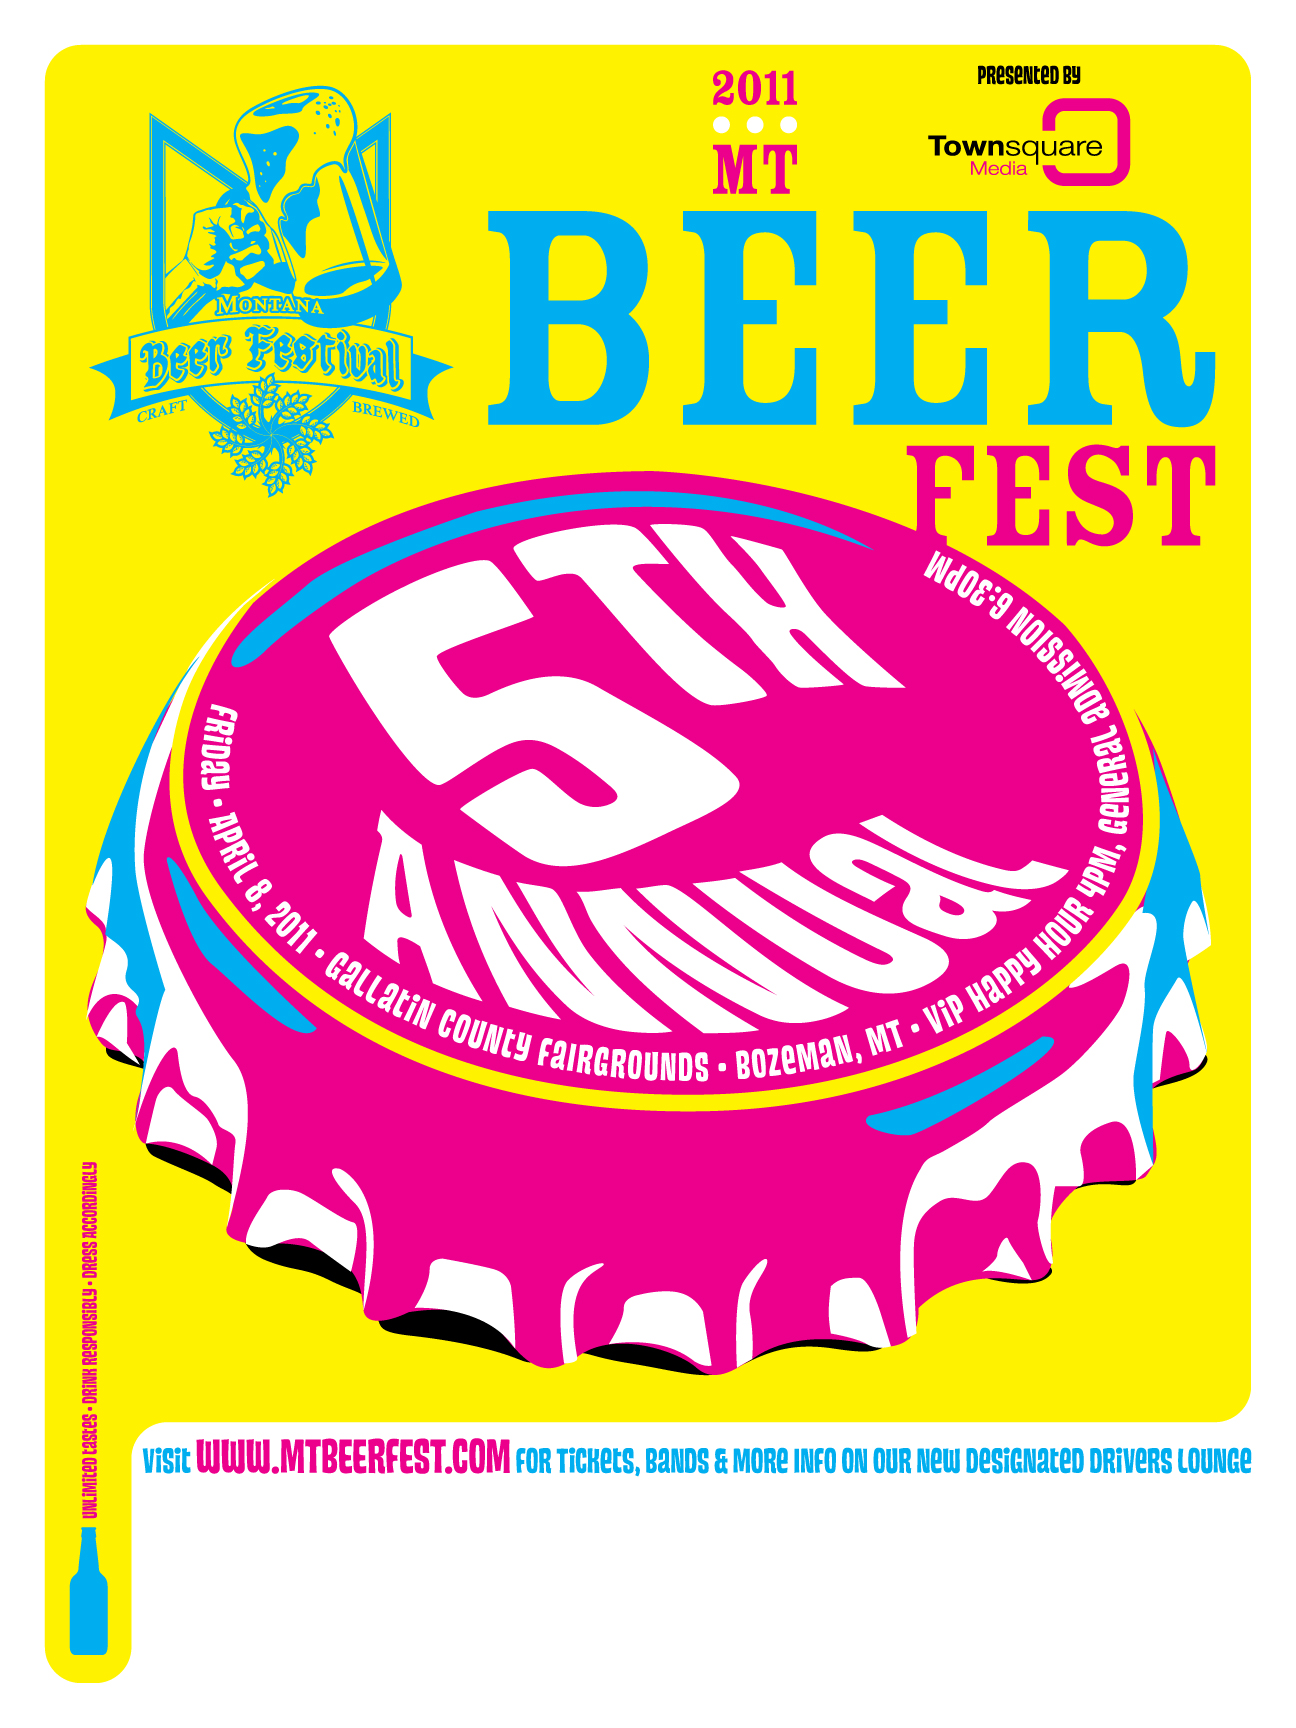 5th Annual MT Beer Festival